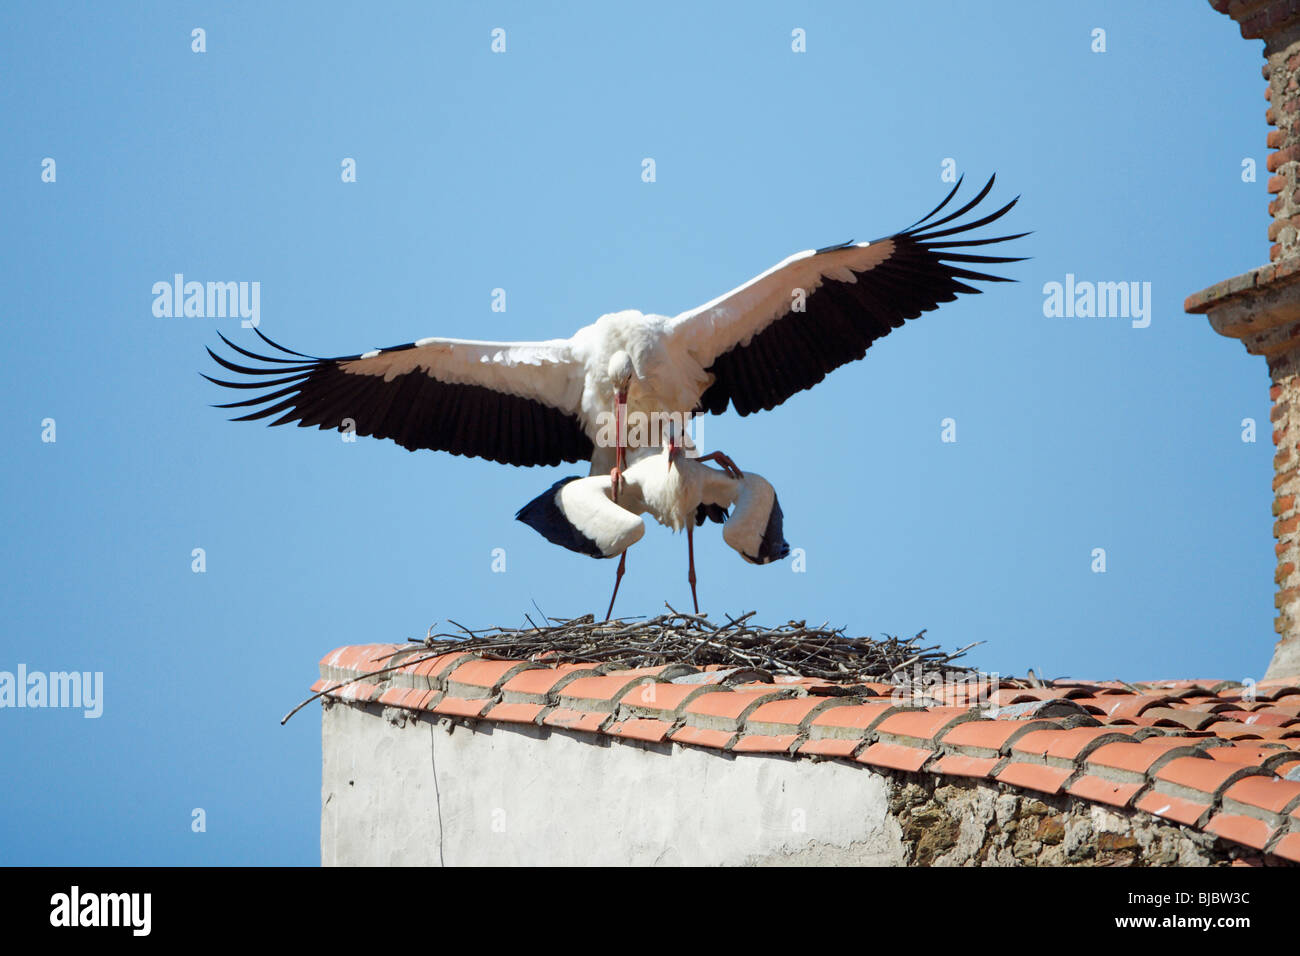 White Stork (Ciconia ciconia), pair mating on building roof, Extremadura, Spain Stock Photo